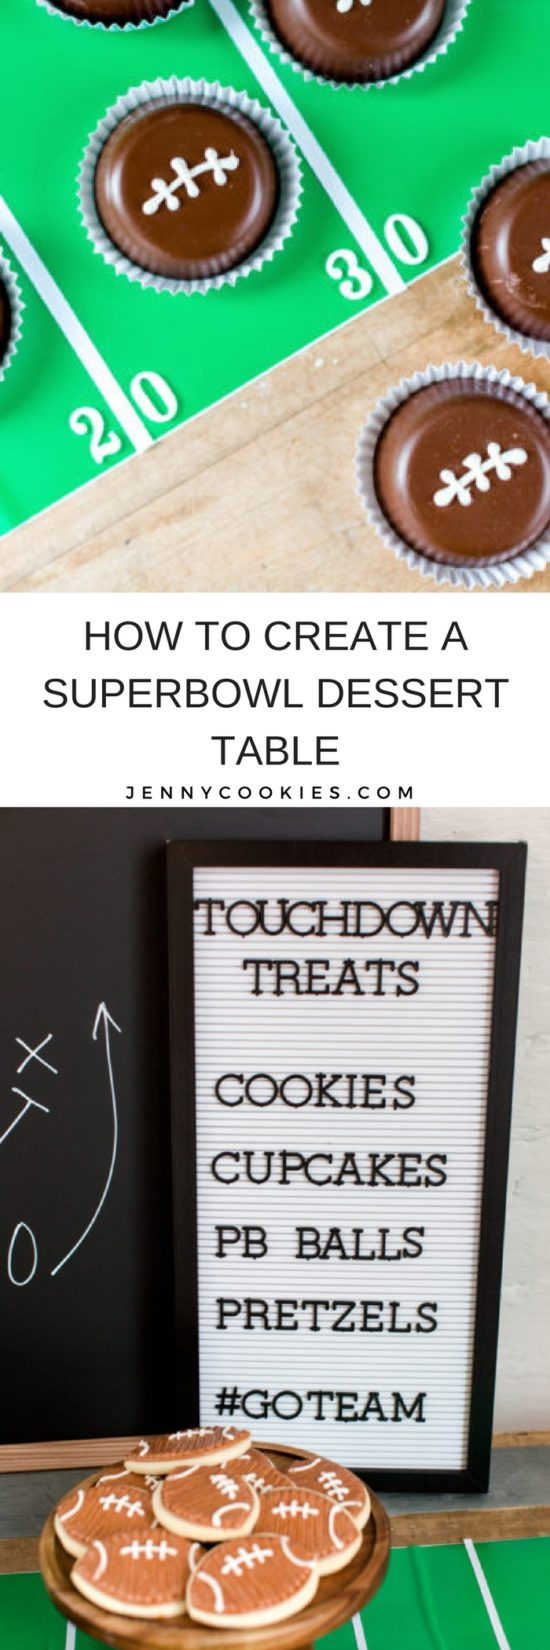 #ad How to Create a Superbowl Dessert Table   super bowl snack ideas   hosting a super bowl party   super bowl themed desserts   super bowl dessert ideas   super bowl themed parties    JennyCookies.com #superbowldesserts #superbowlparty #superbowl  #handmadewithjoann